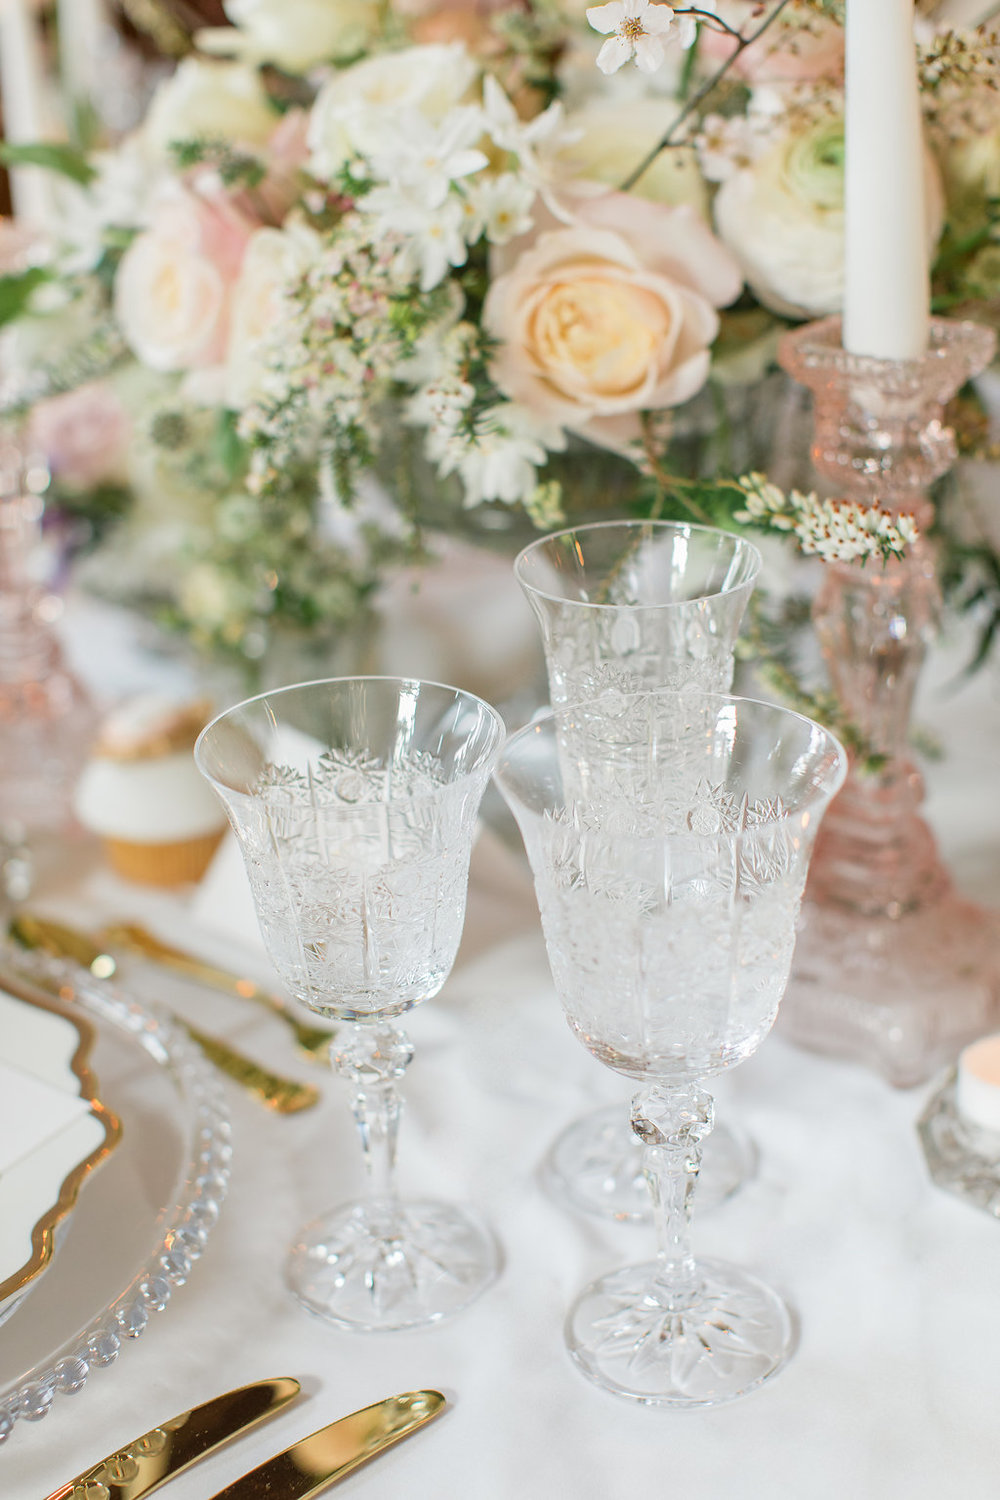 The Timeless Stylist-Elegant and Romantic Dinner Party Styling-Luxury Glassware